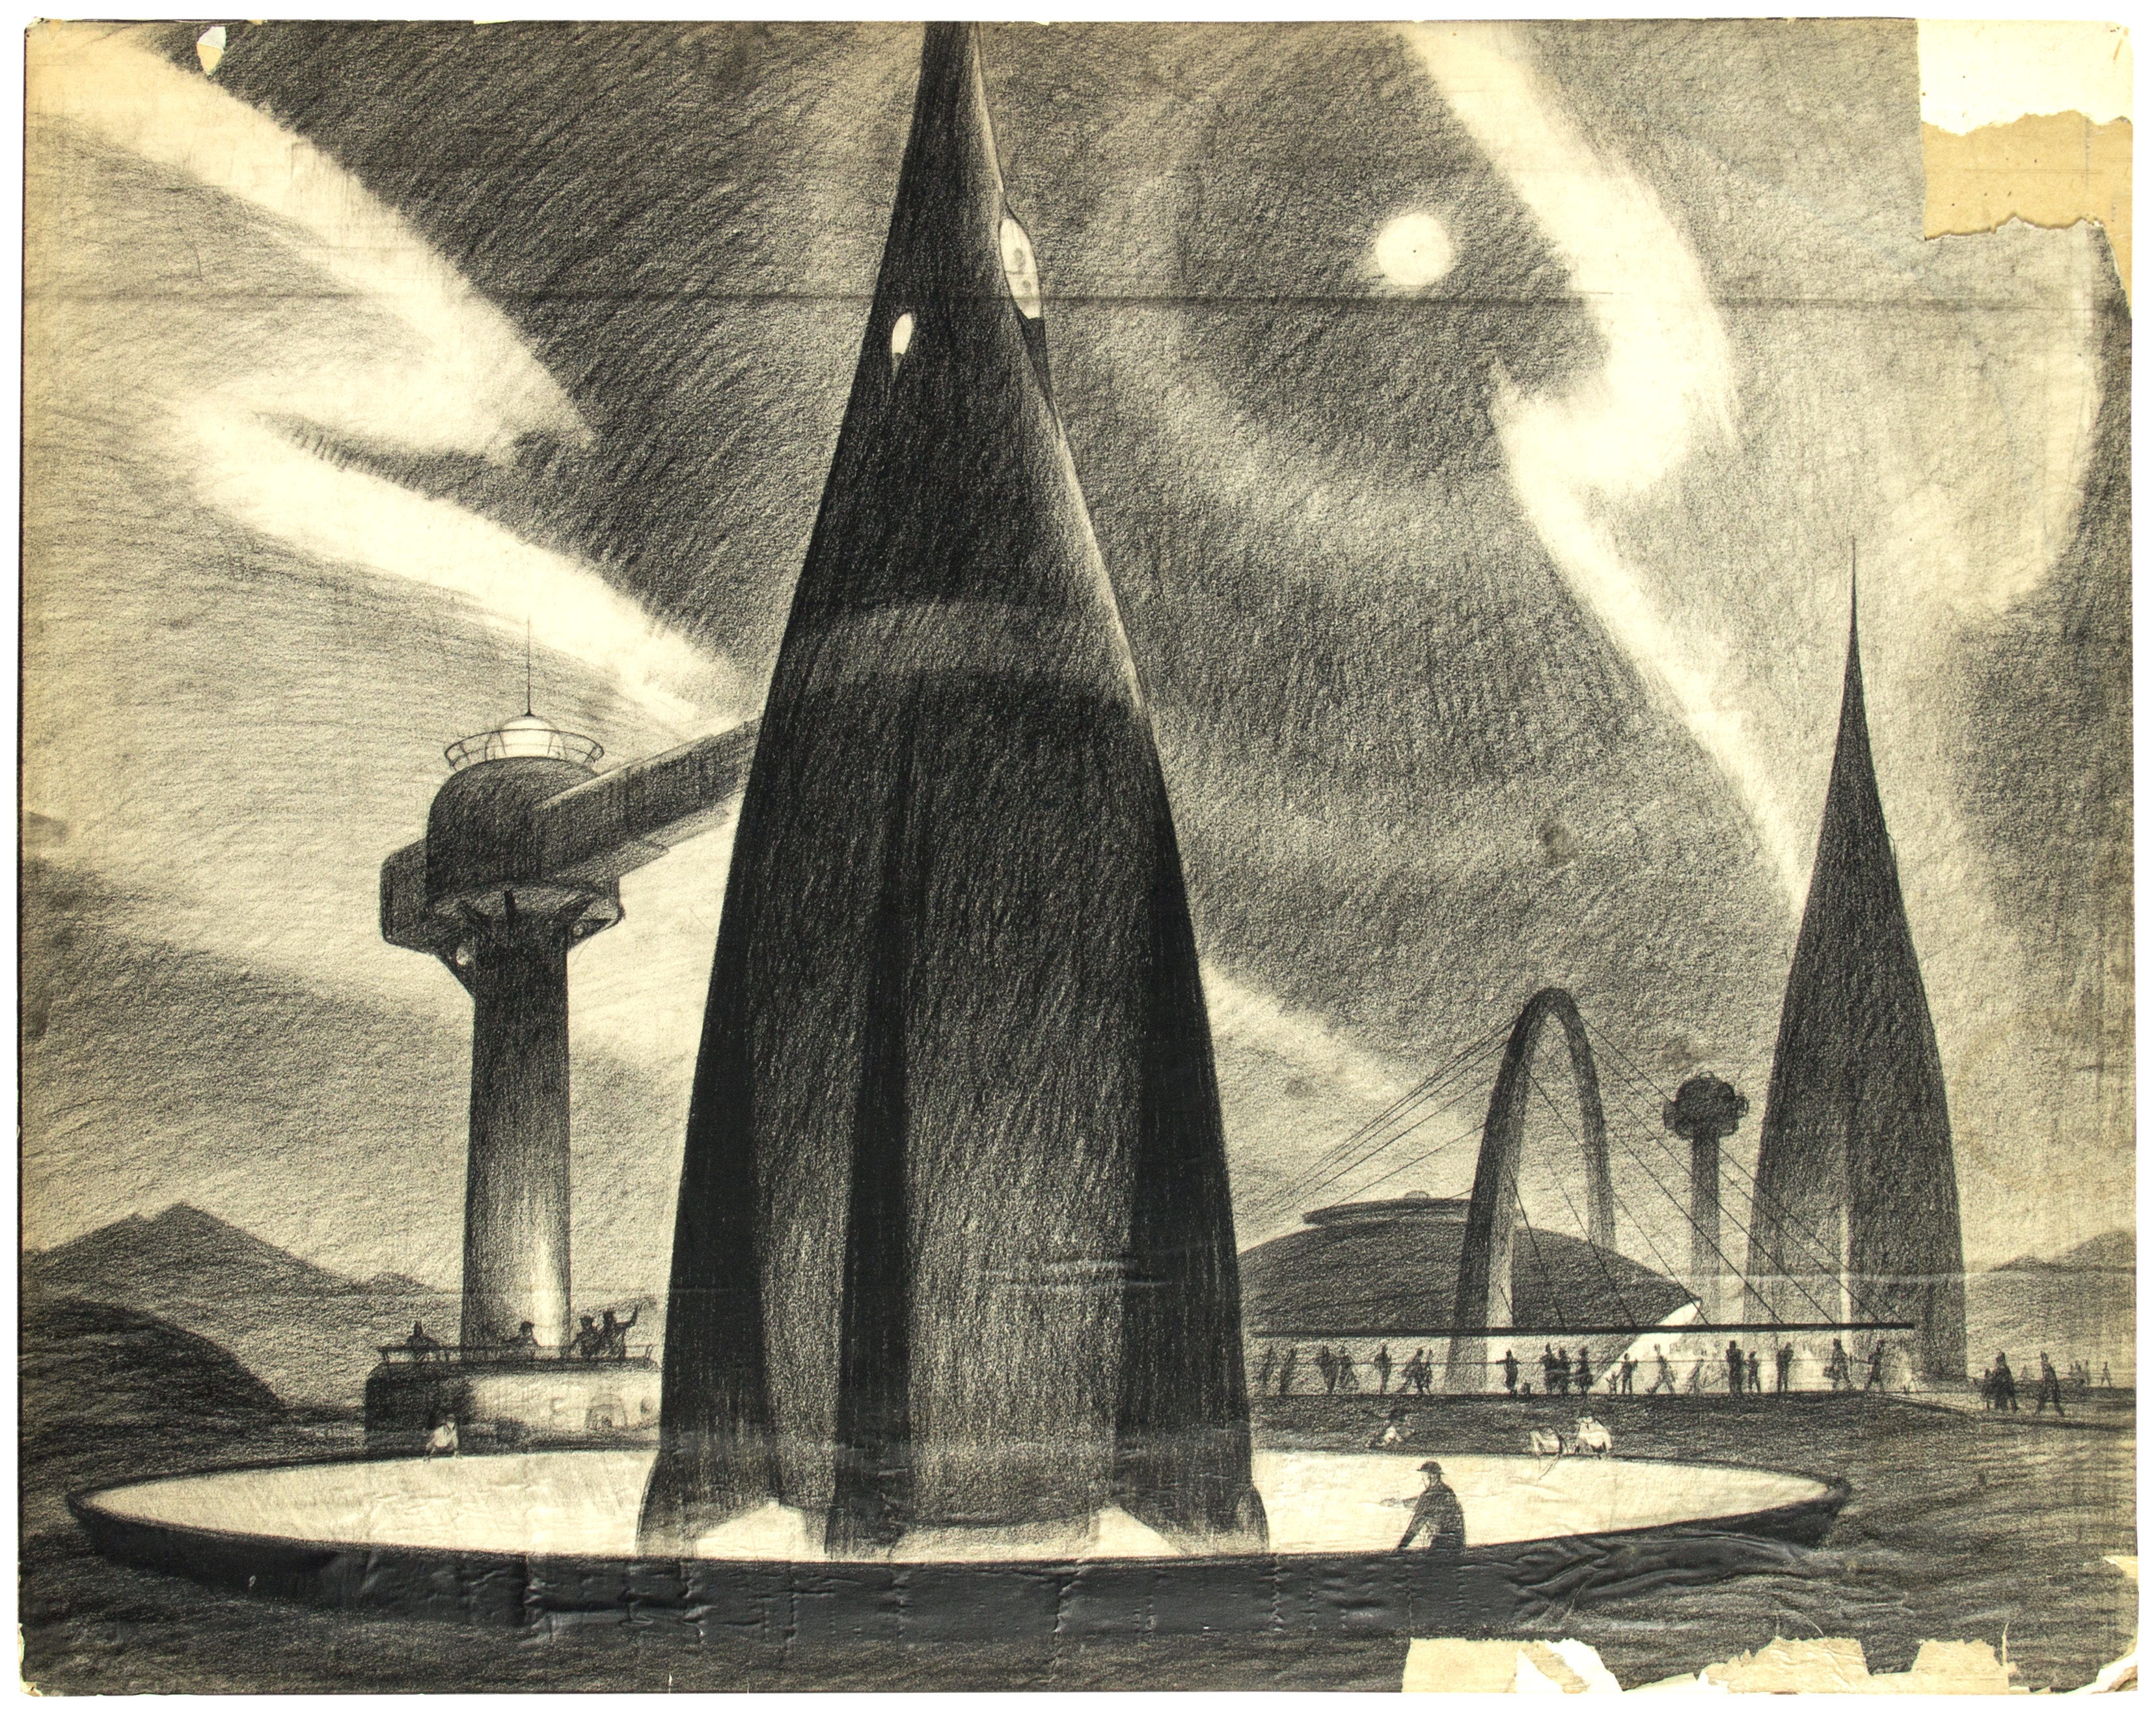 Tomorrowland original concept drawing, 1954, by Imagineer Bruce Bushman. This drawing was shown on the 'Disneyland' TV show to explain what the park would look like.